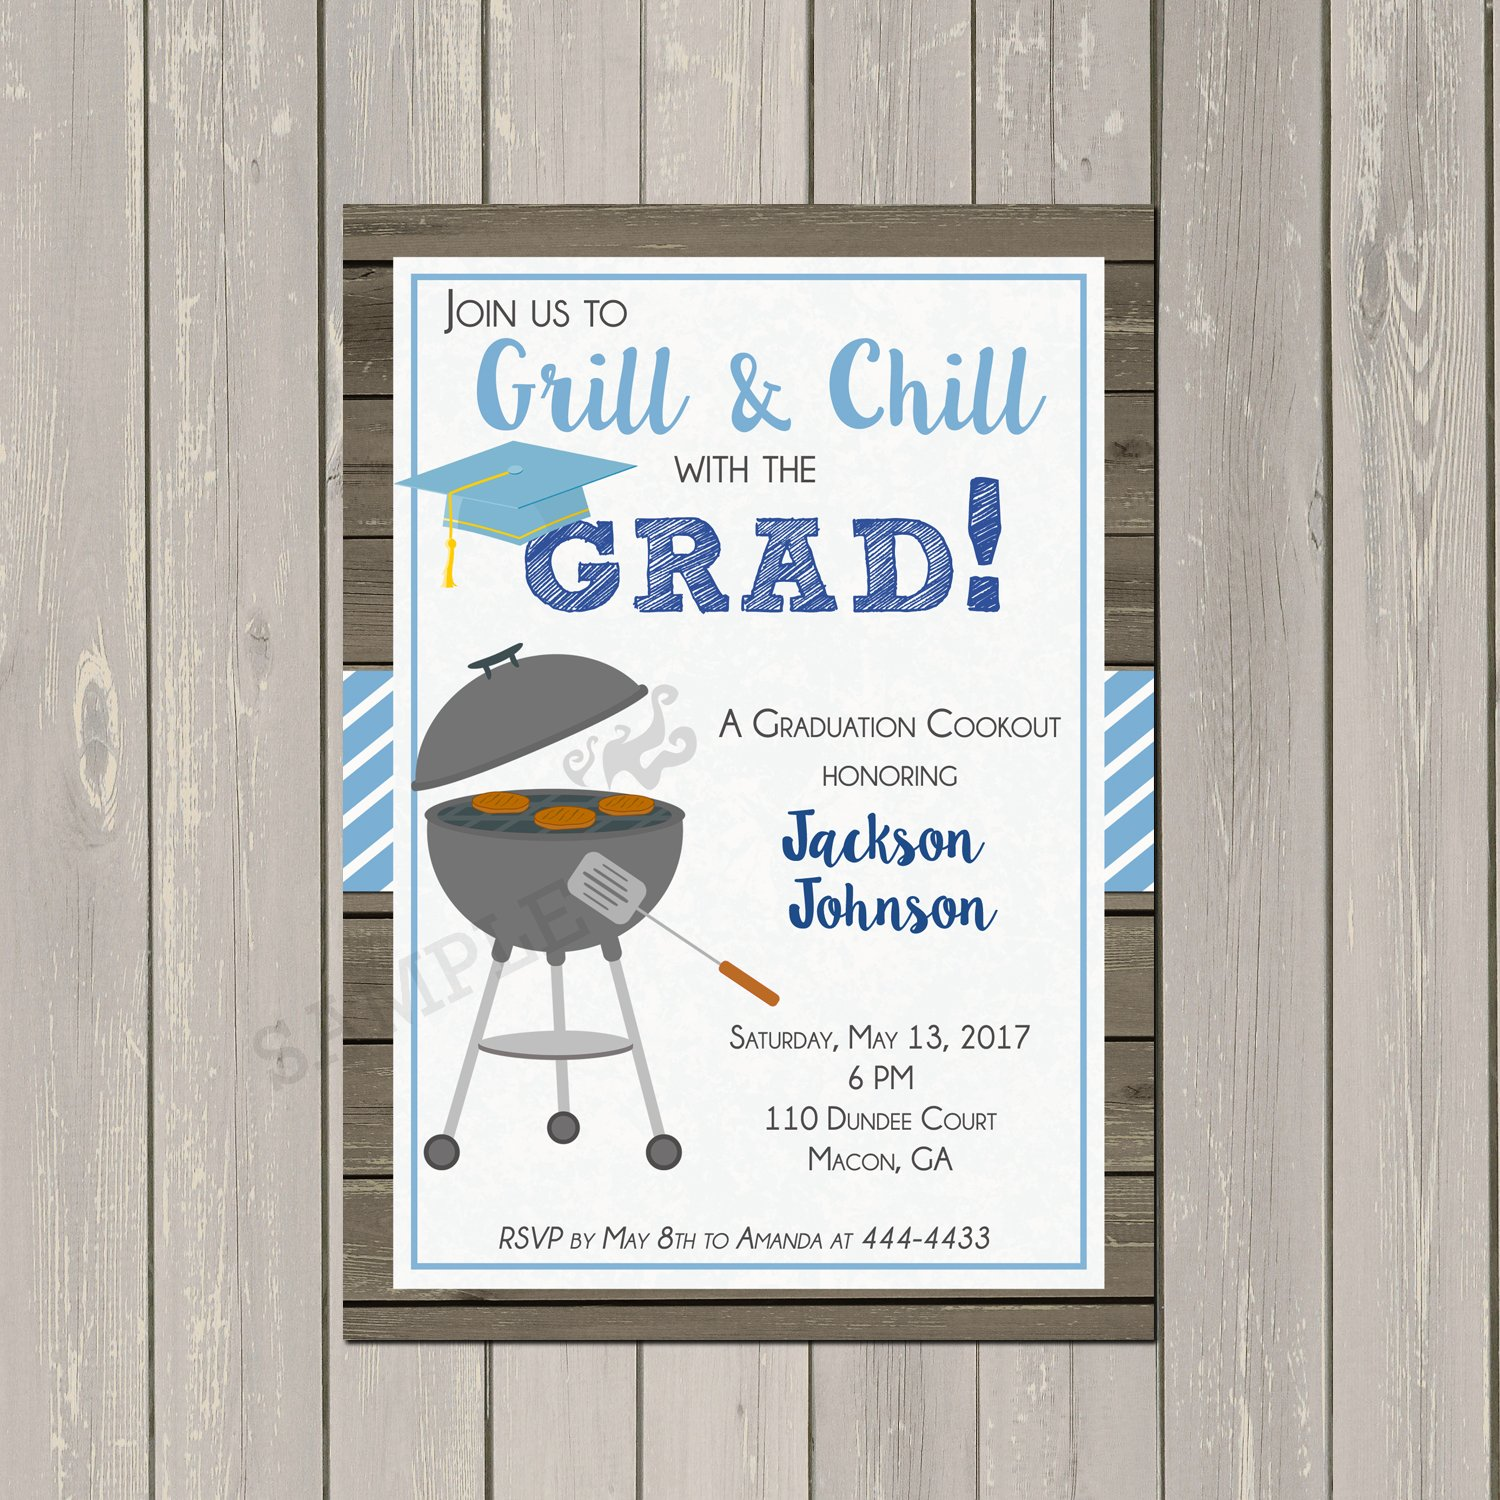 Amazon graduation bbq cookout invitation highschool or college amazon graduation bbq cookout invitation highschool or college graduation party invitation base price is for 10 5x7 cardstock inviattions with white filmwisefo